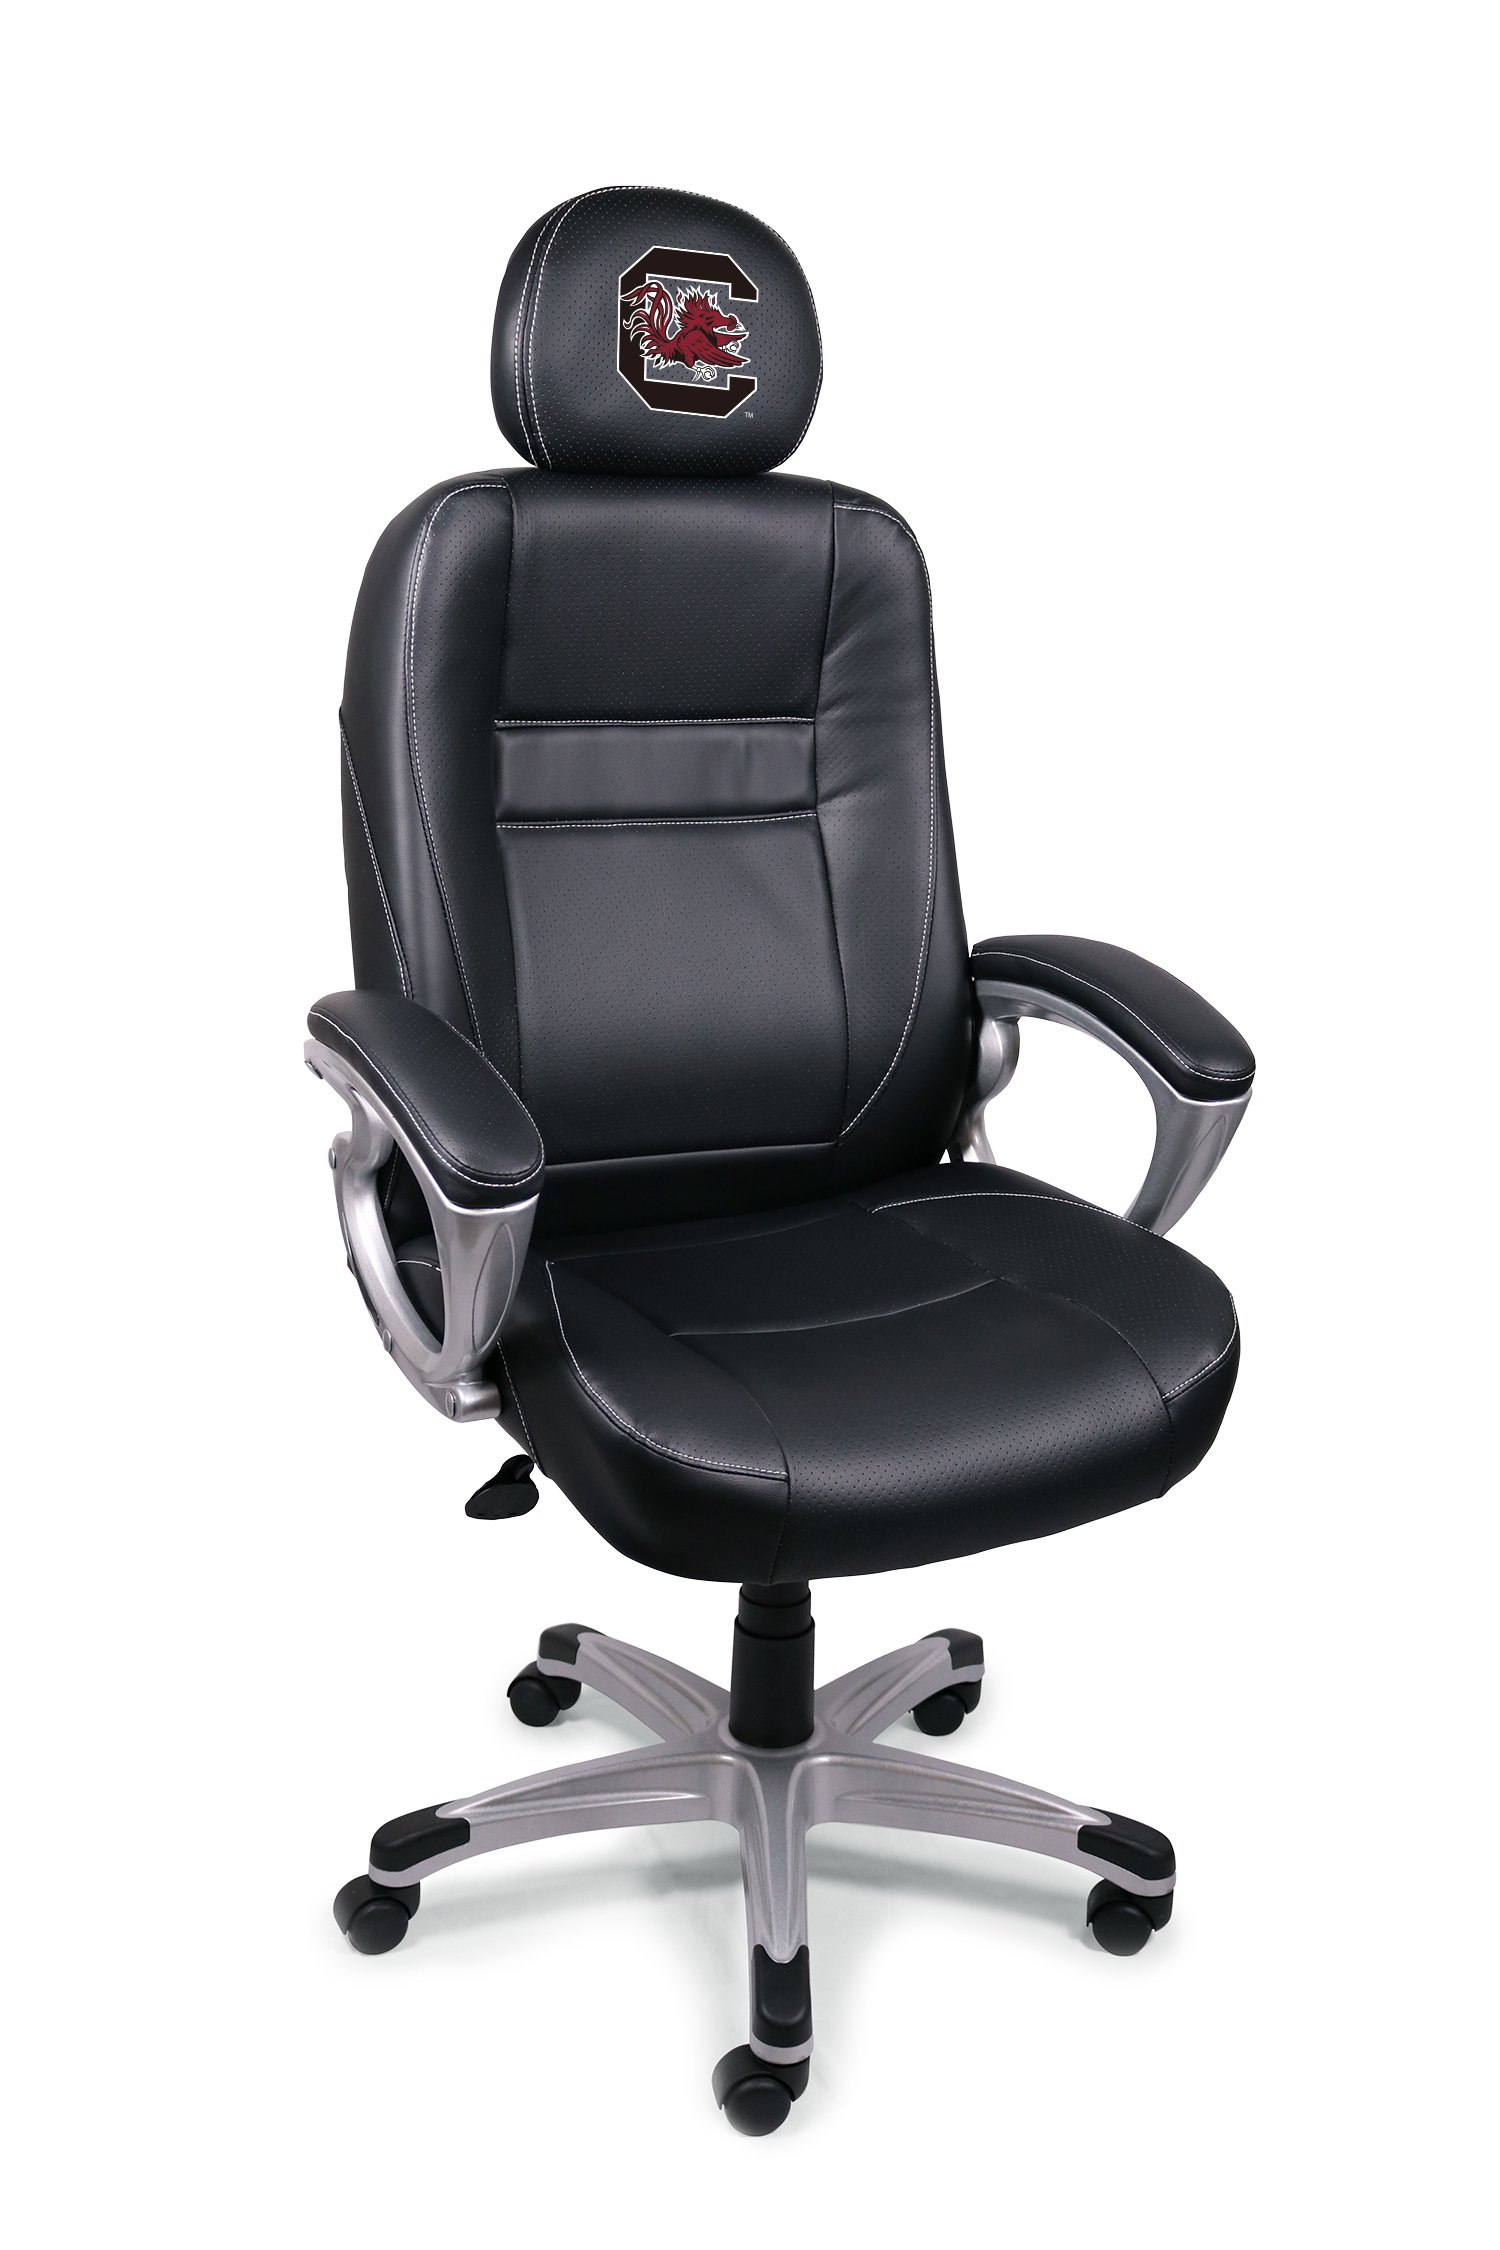 Wild Sports NCAA College South Carolina Gamecocks Leather Office Chair